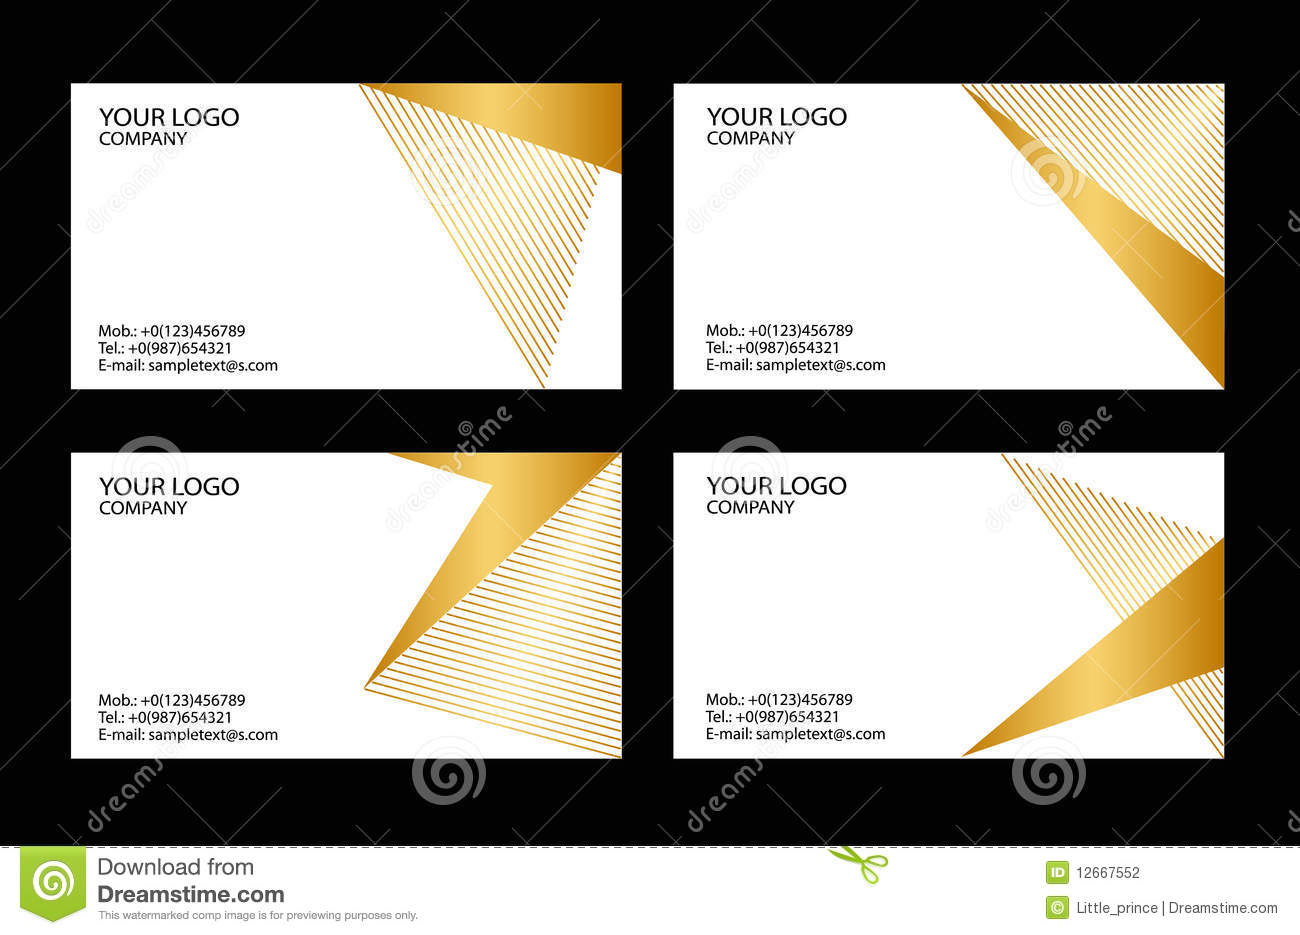 Business Cards Templates Stock graphy Image